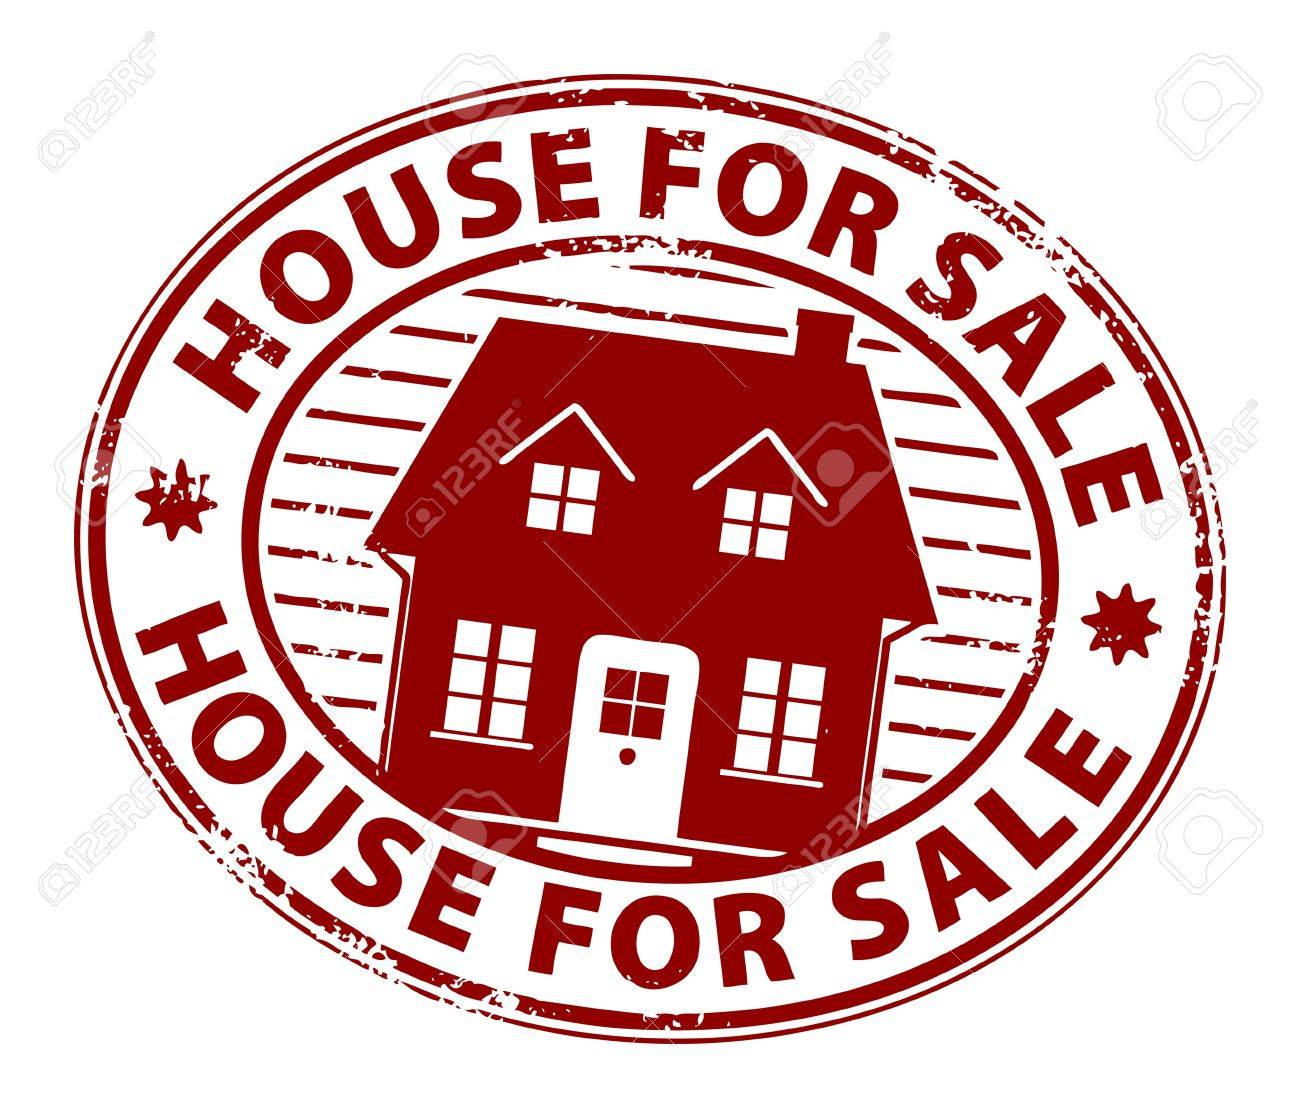 Abstract grunge stamp with the words house for sale written inside the stamp Stock Vector - 13765859